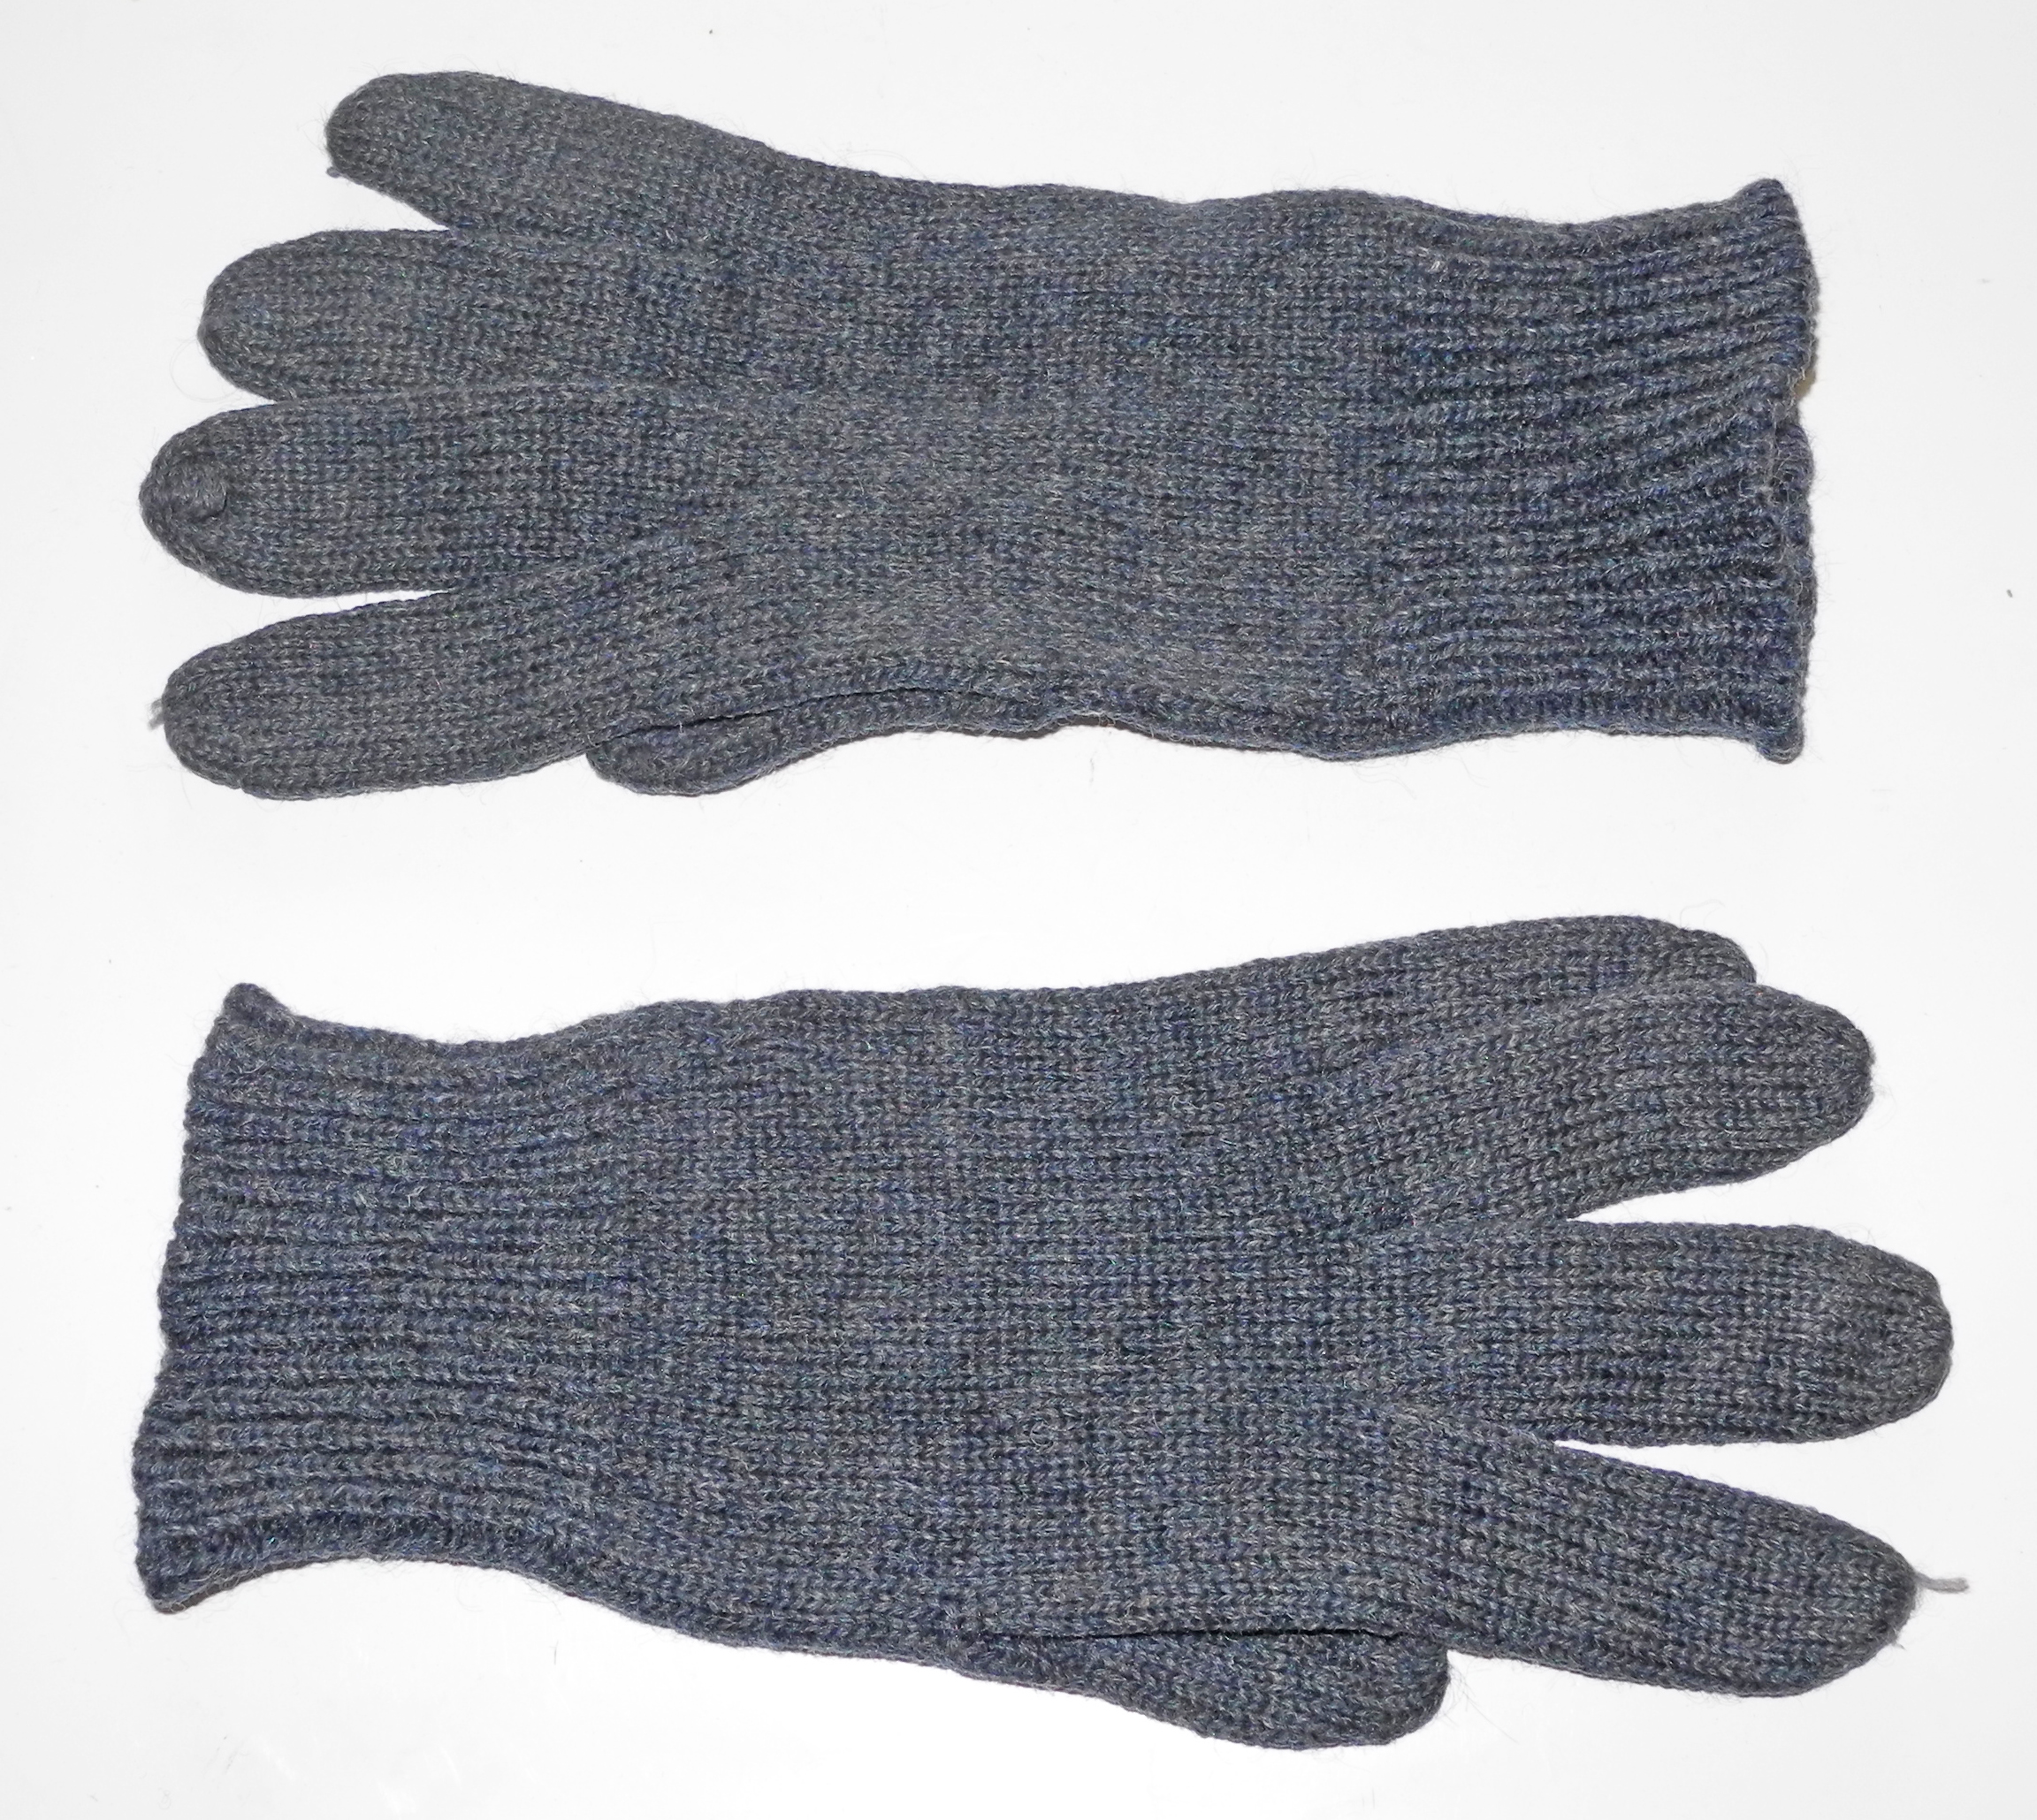 RAF issue wool gloves